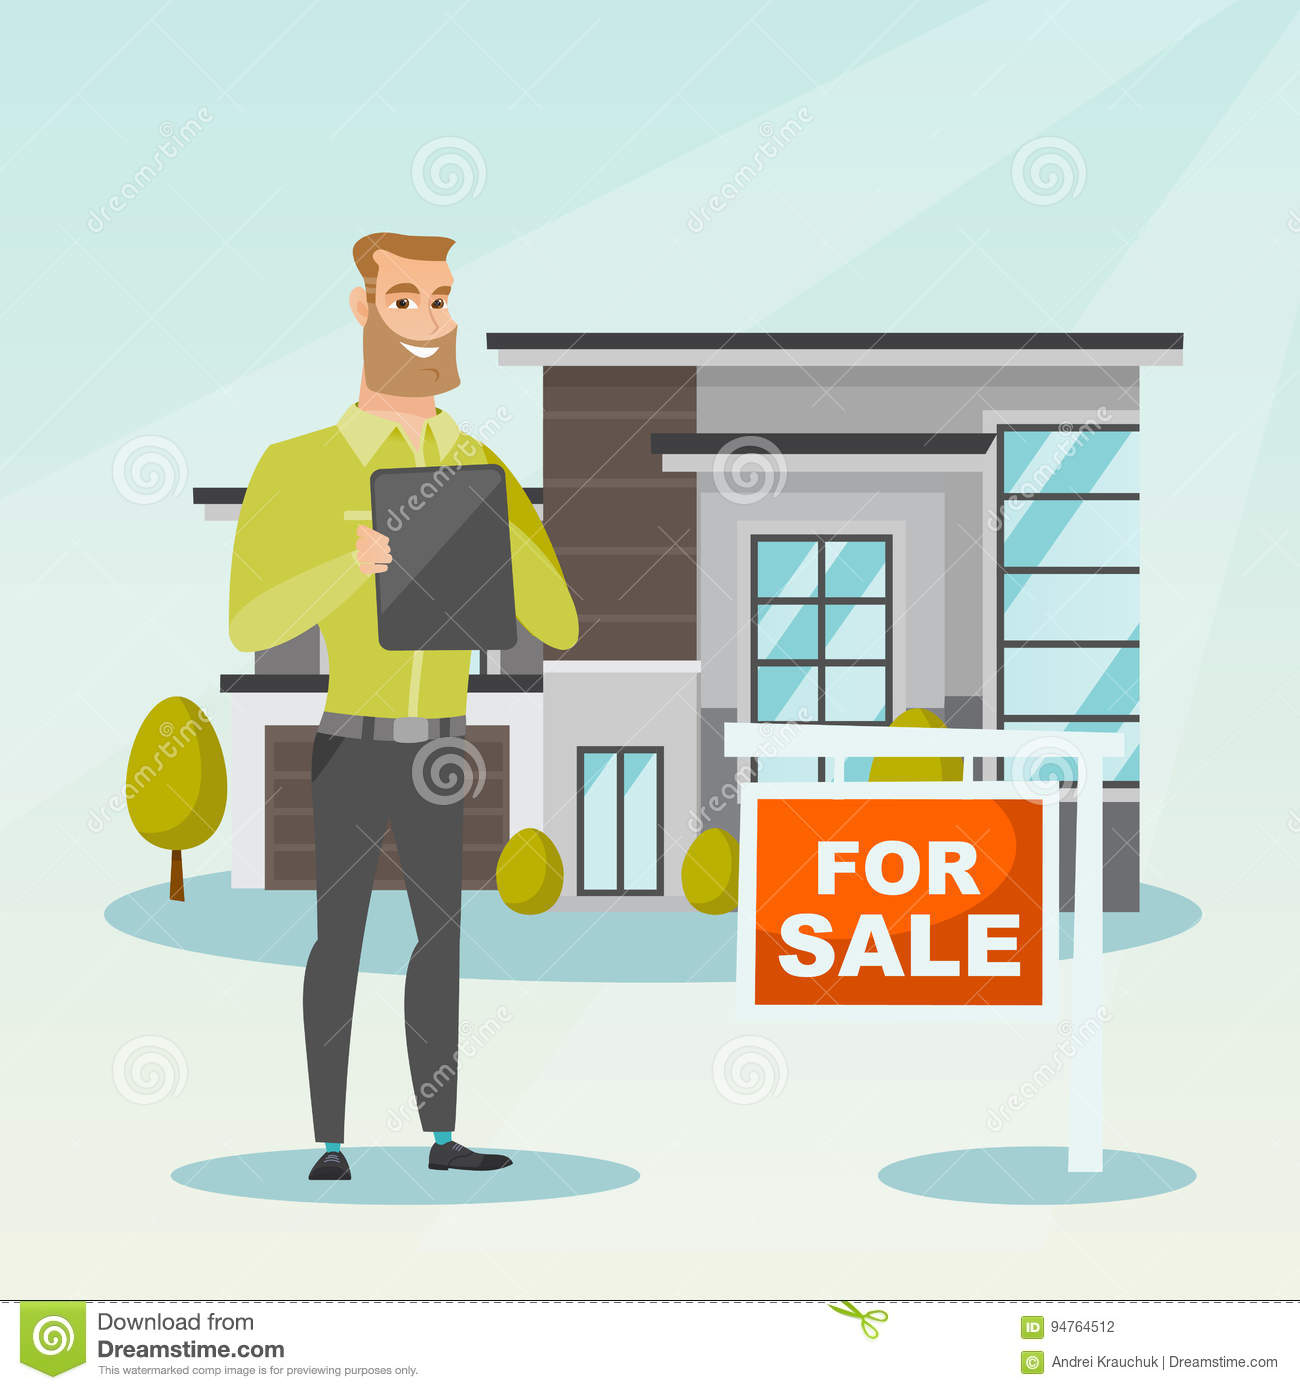 Happy Real Estate Agent Signing Home Purchase Contract In Front Of House  For Sale. Real Estate Agent Standing In Front Of House With Placard For  Sale.